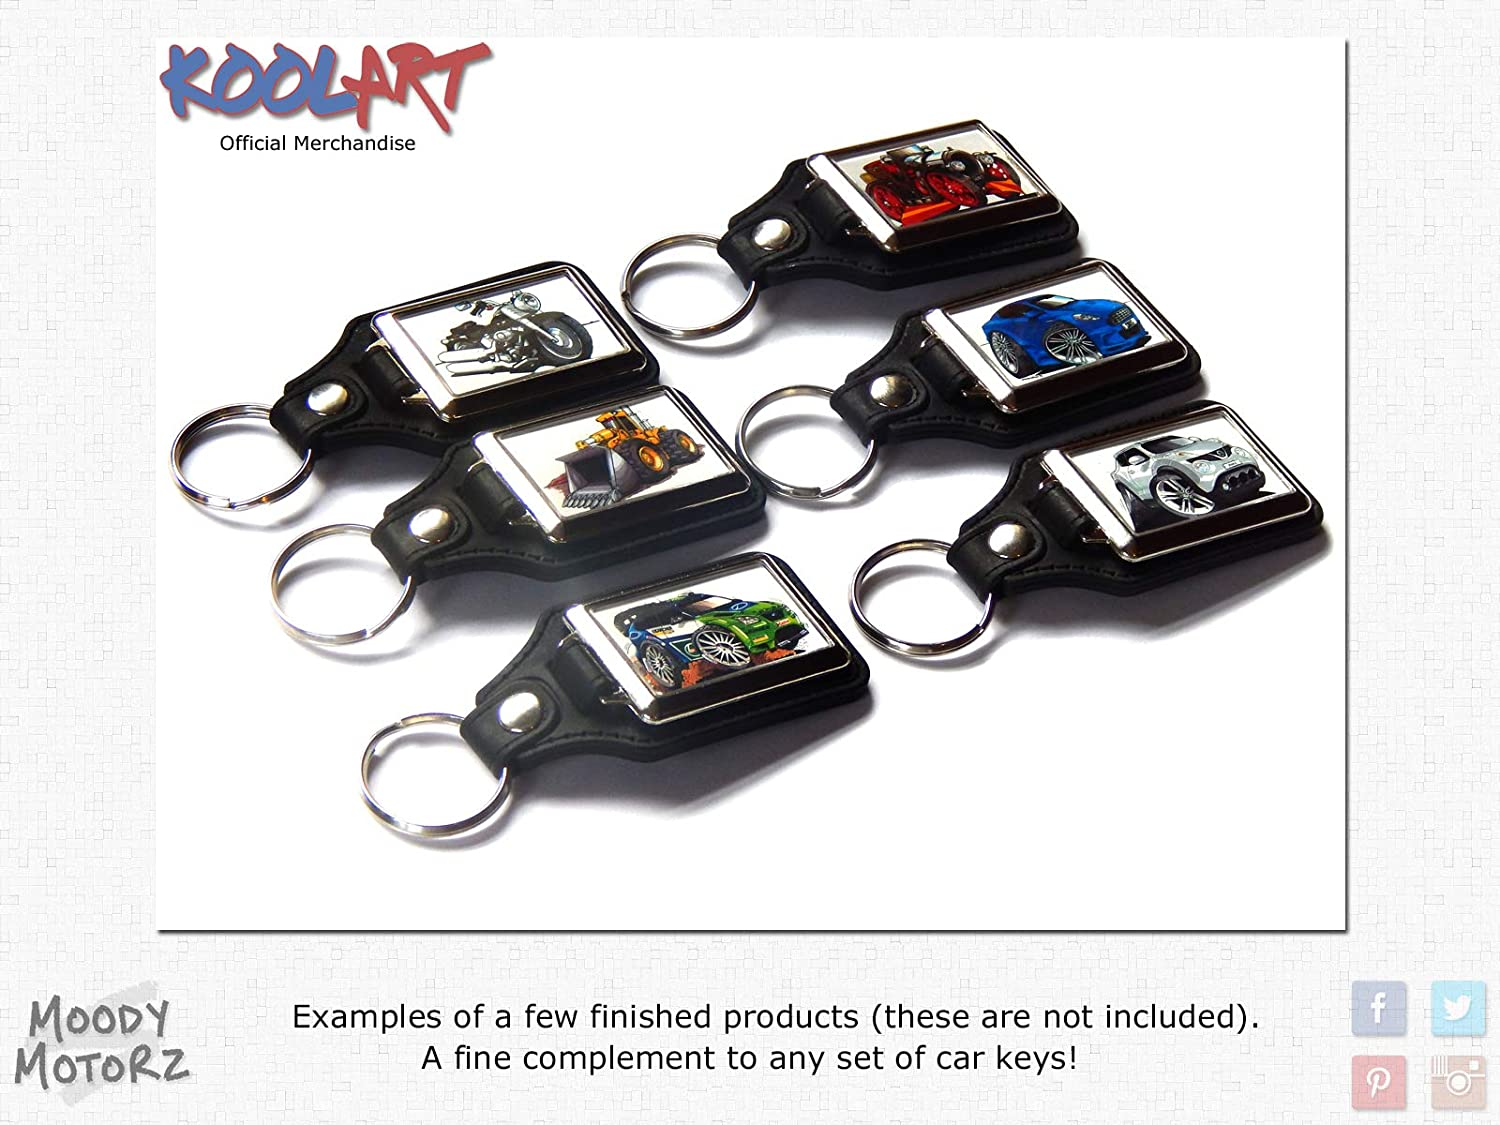 Koolart Cartoon Vito Van Commercial Vehicle Quality Leather and Chrome Keyring Choose a Colour Silver